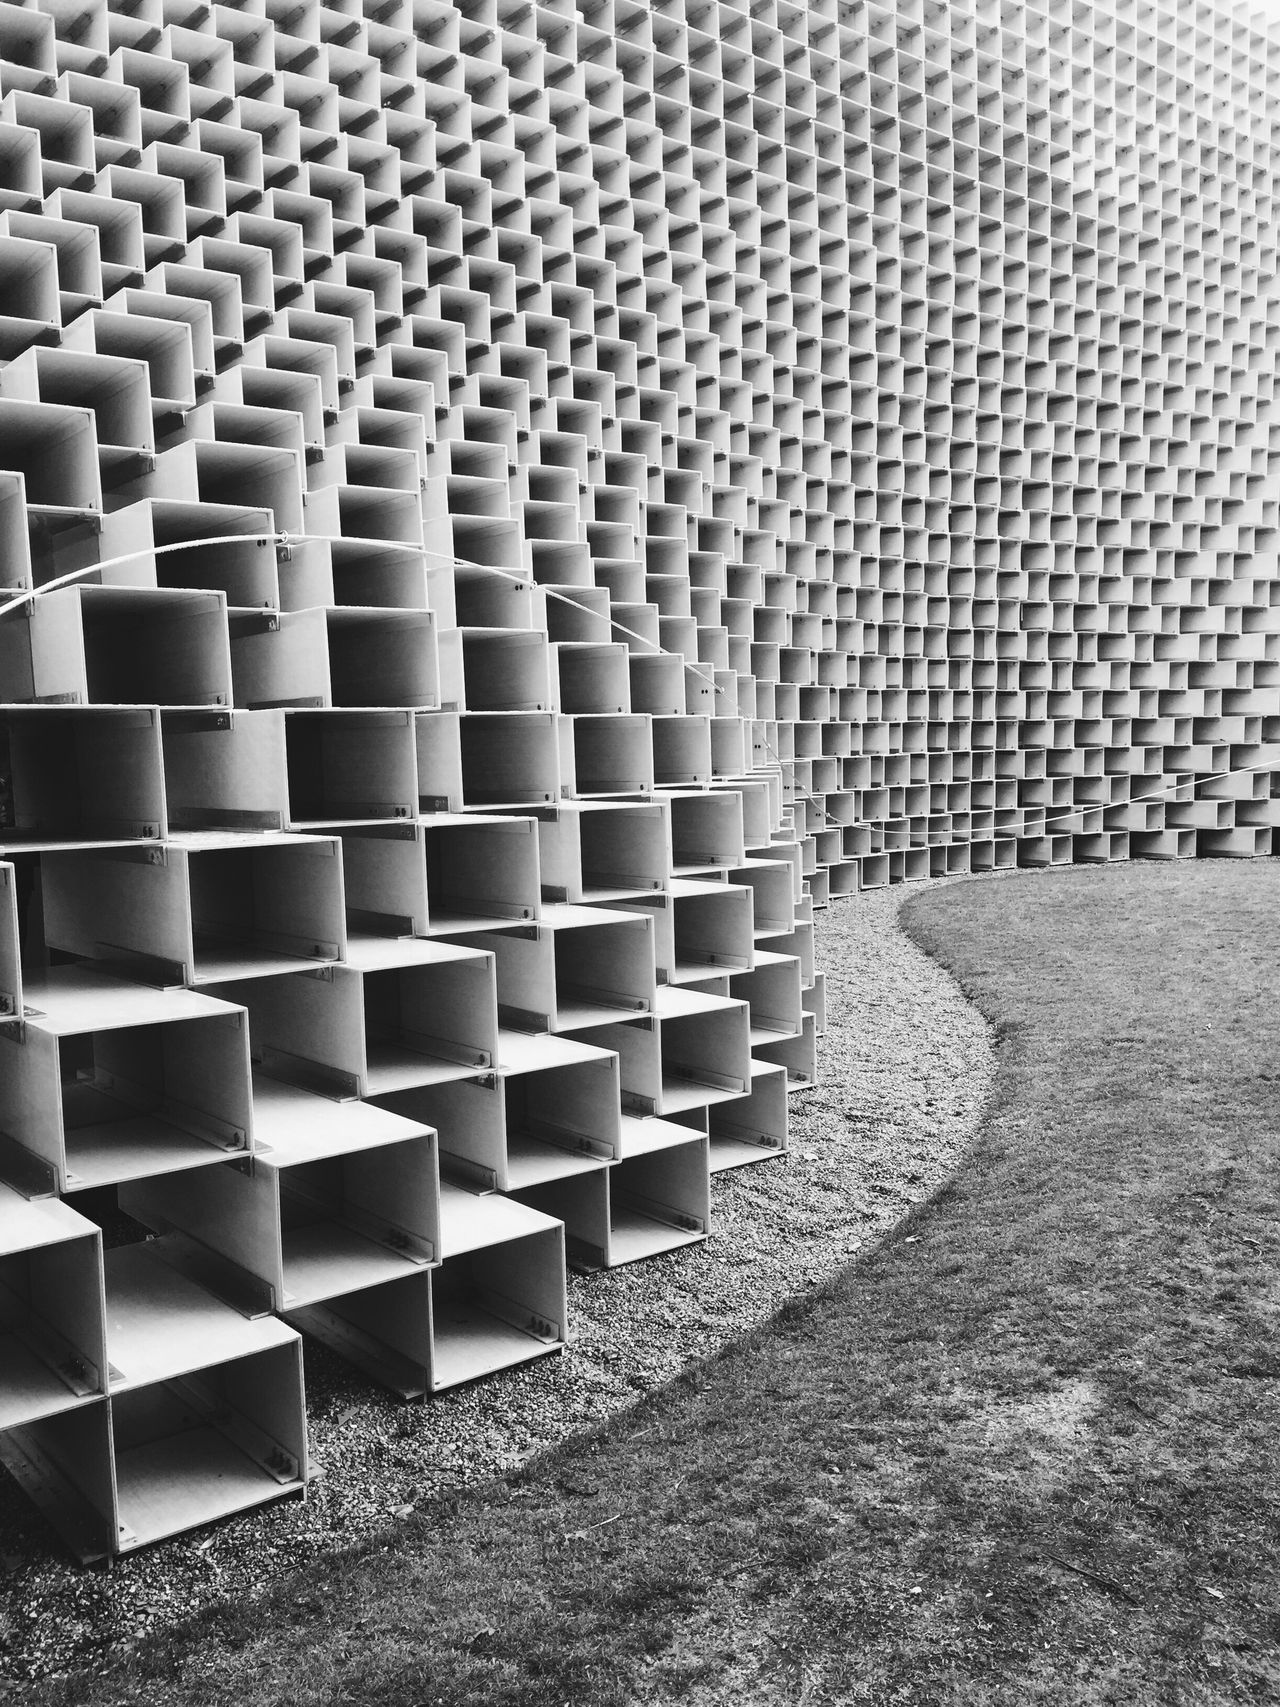 Serpentine Pattern Architecture Architecturephotography Architectural Detail Architecture Monochrome Photography ArchiTexture The City Light Minimalist Architecture